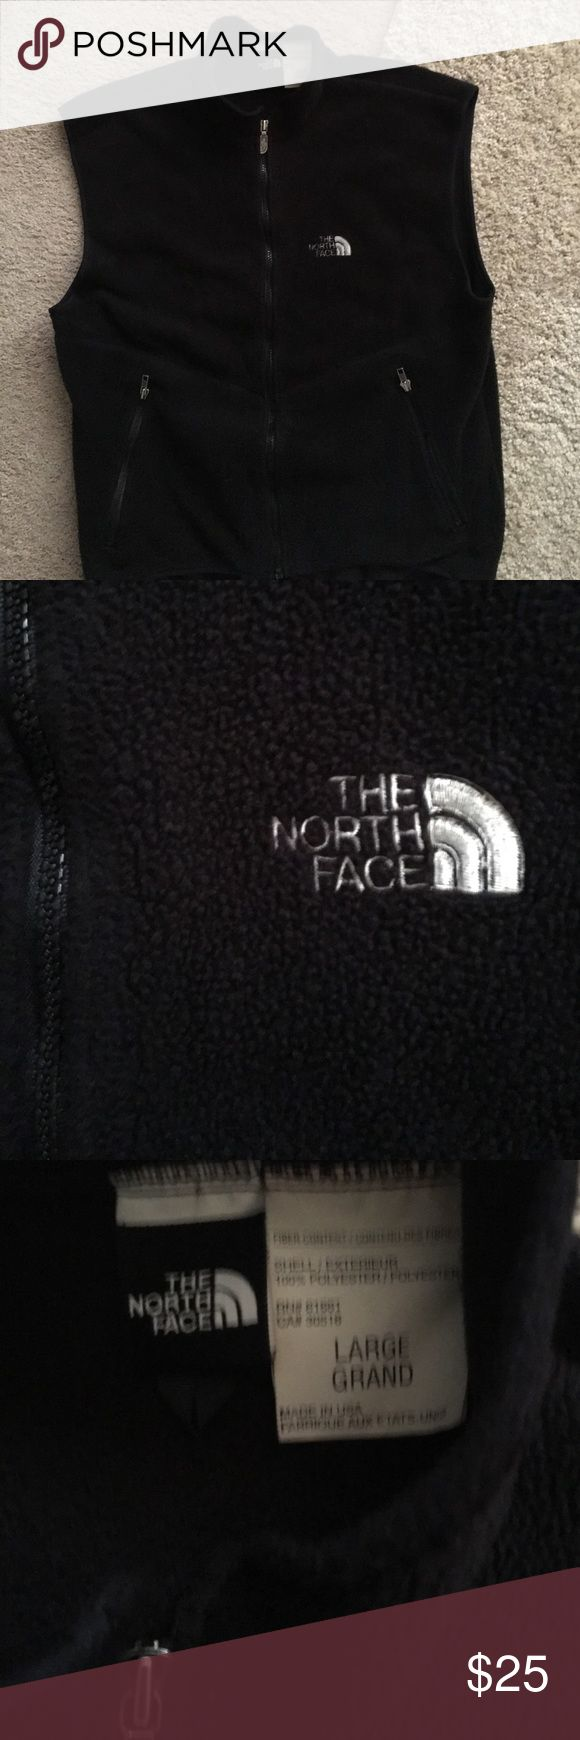 North face fleece vest Black fleece North Face Vest Great condition North Face Jackets & Coats Vests